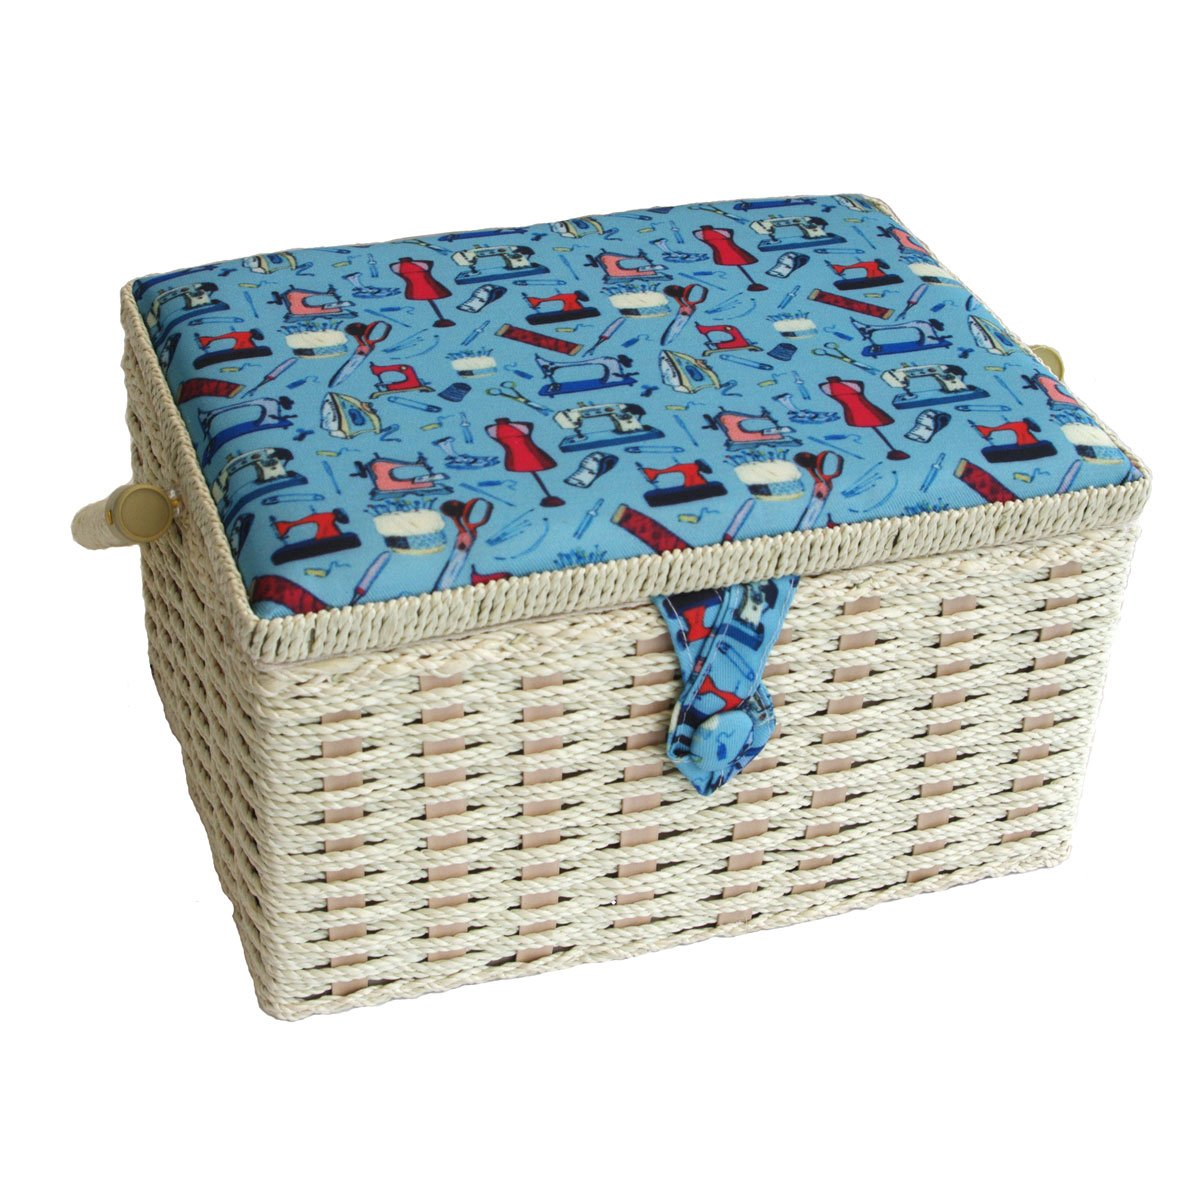 Sewing-Online Small Sewing Notions Sewing Basket 26 x 19 x 15cm FM-006 Groves Asia